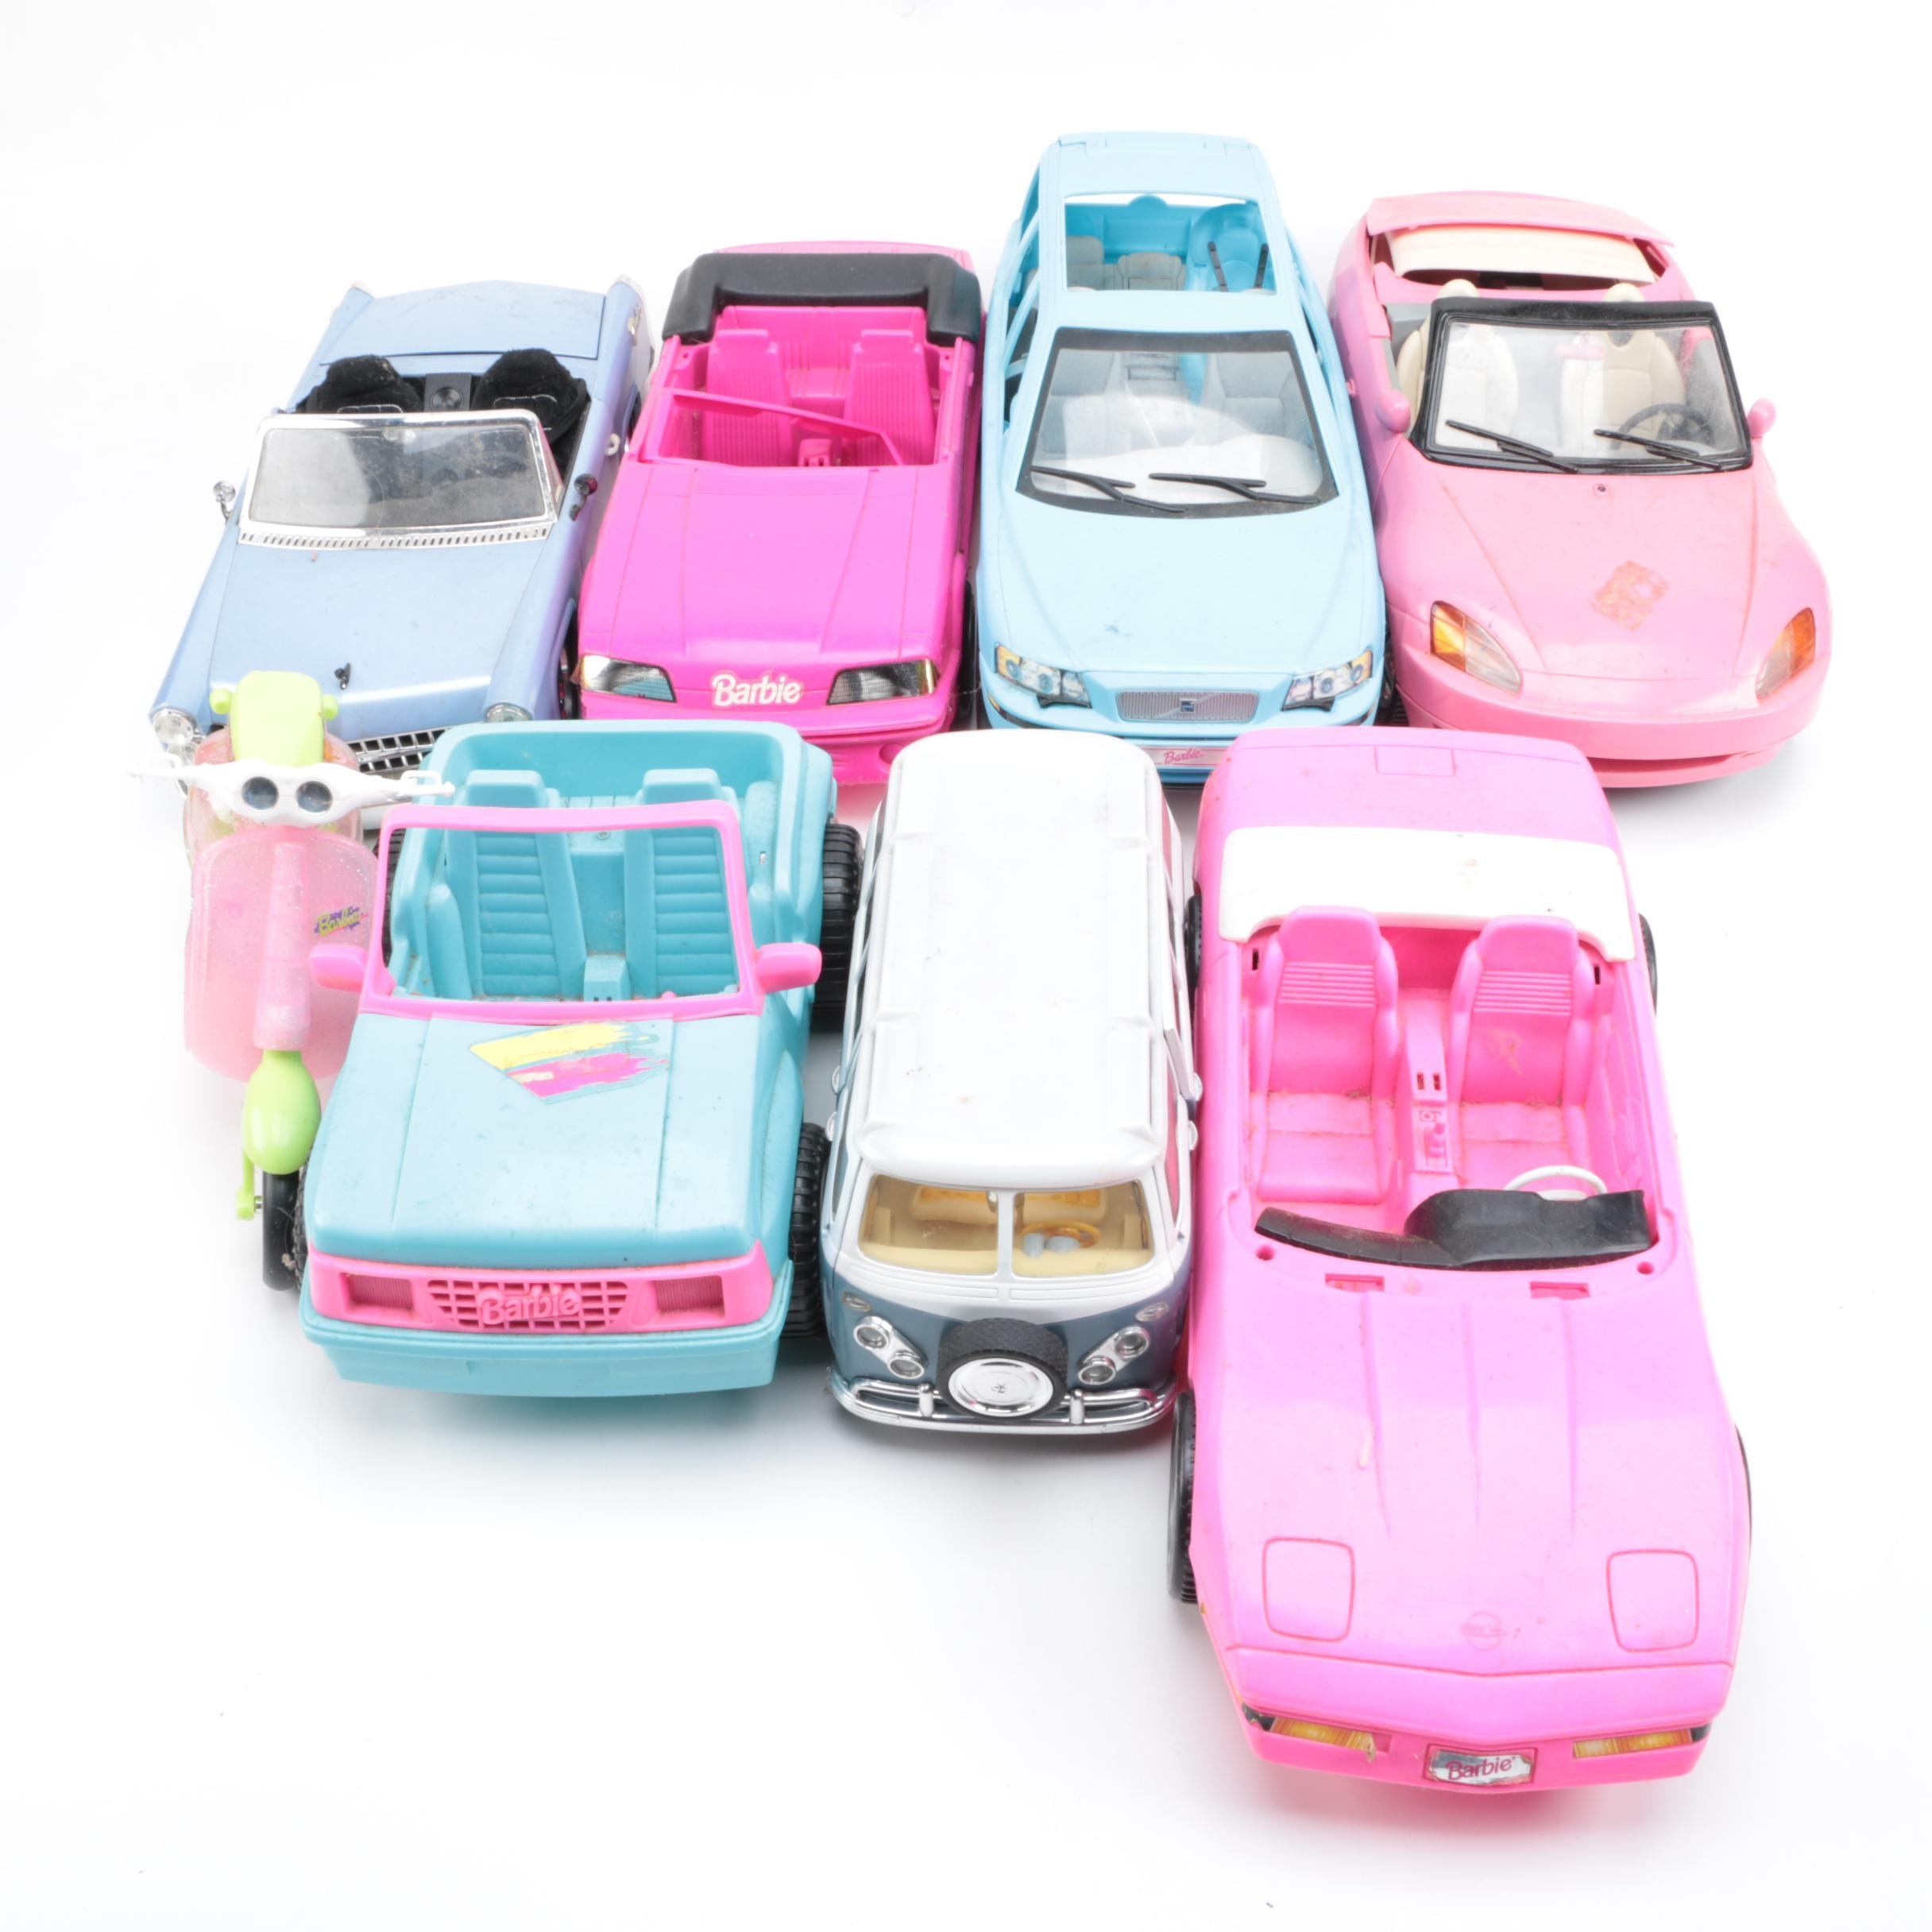 Toy Vehicles Including Barbie